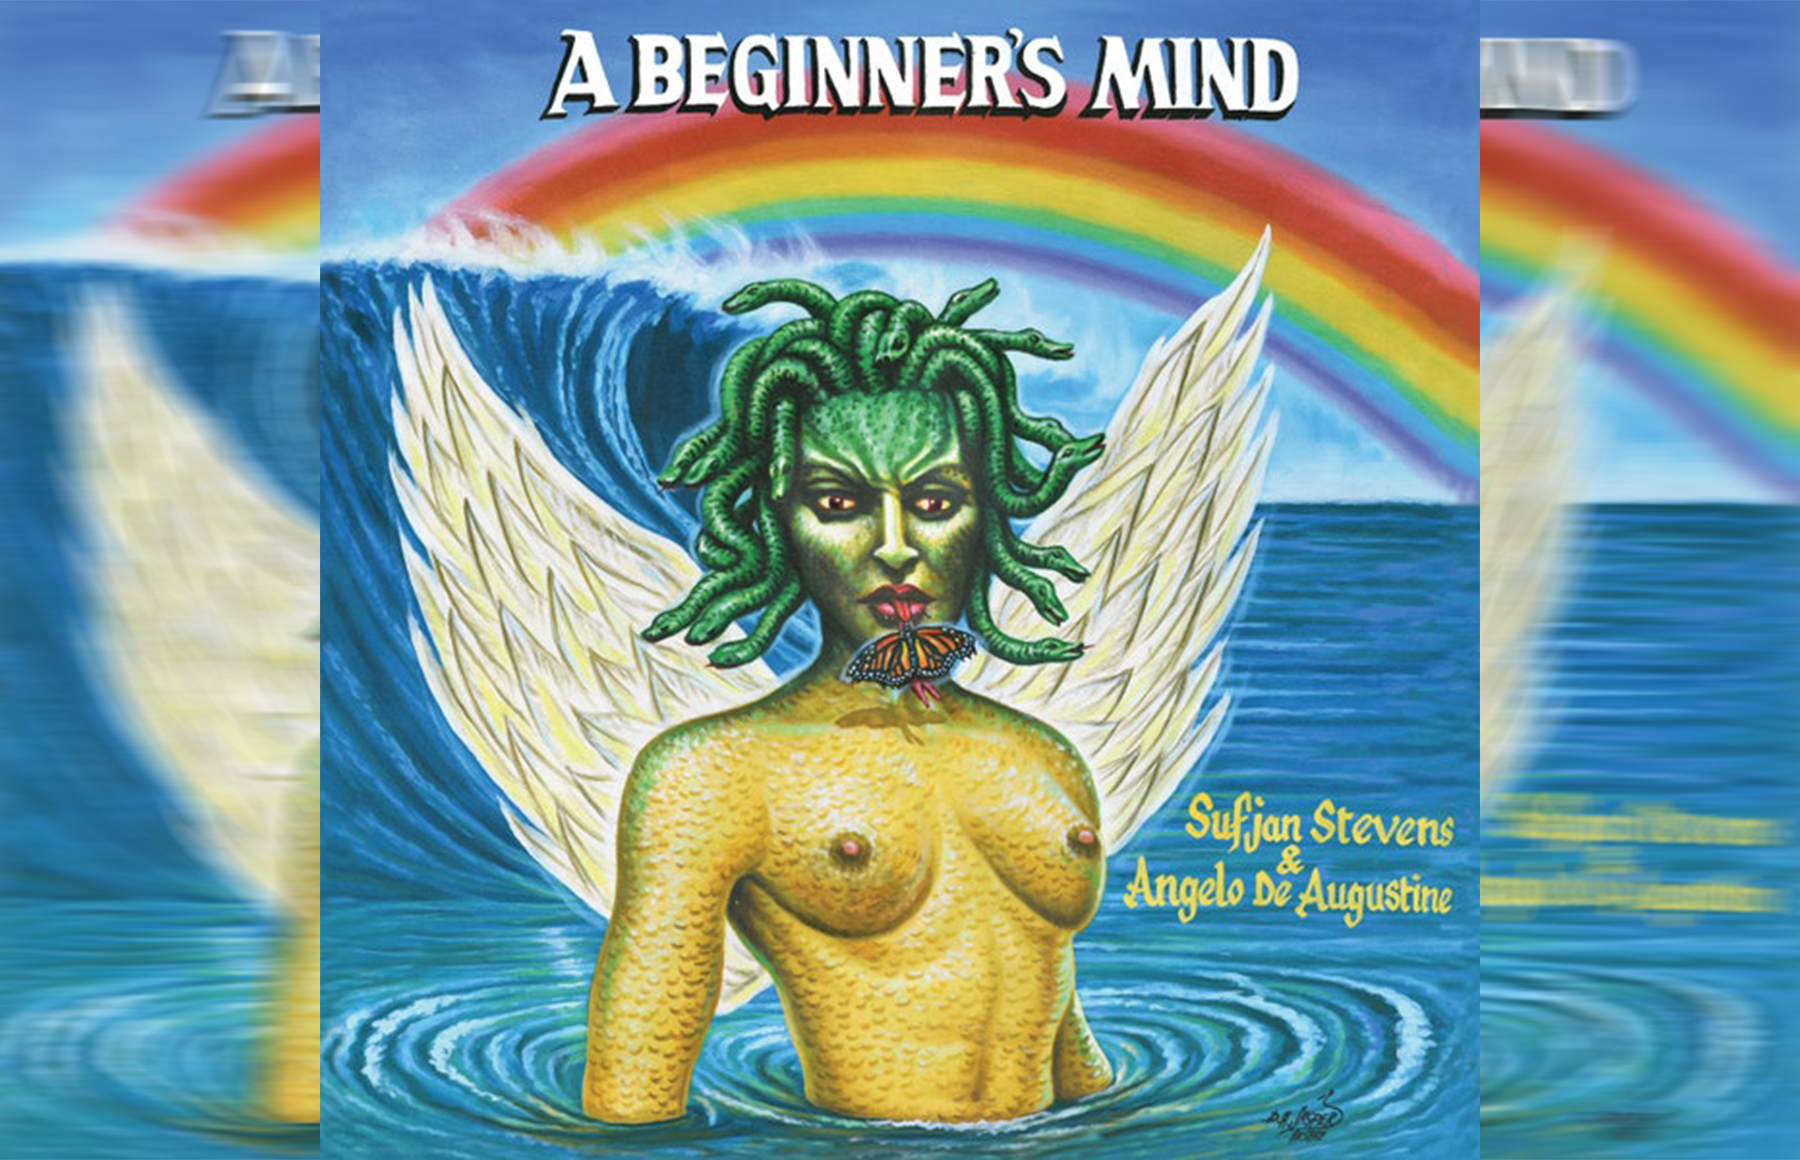 photo of A Beginner's Mind album cover